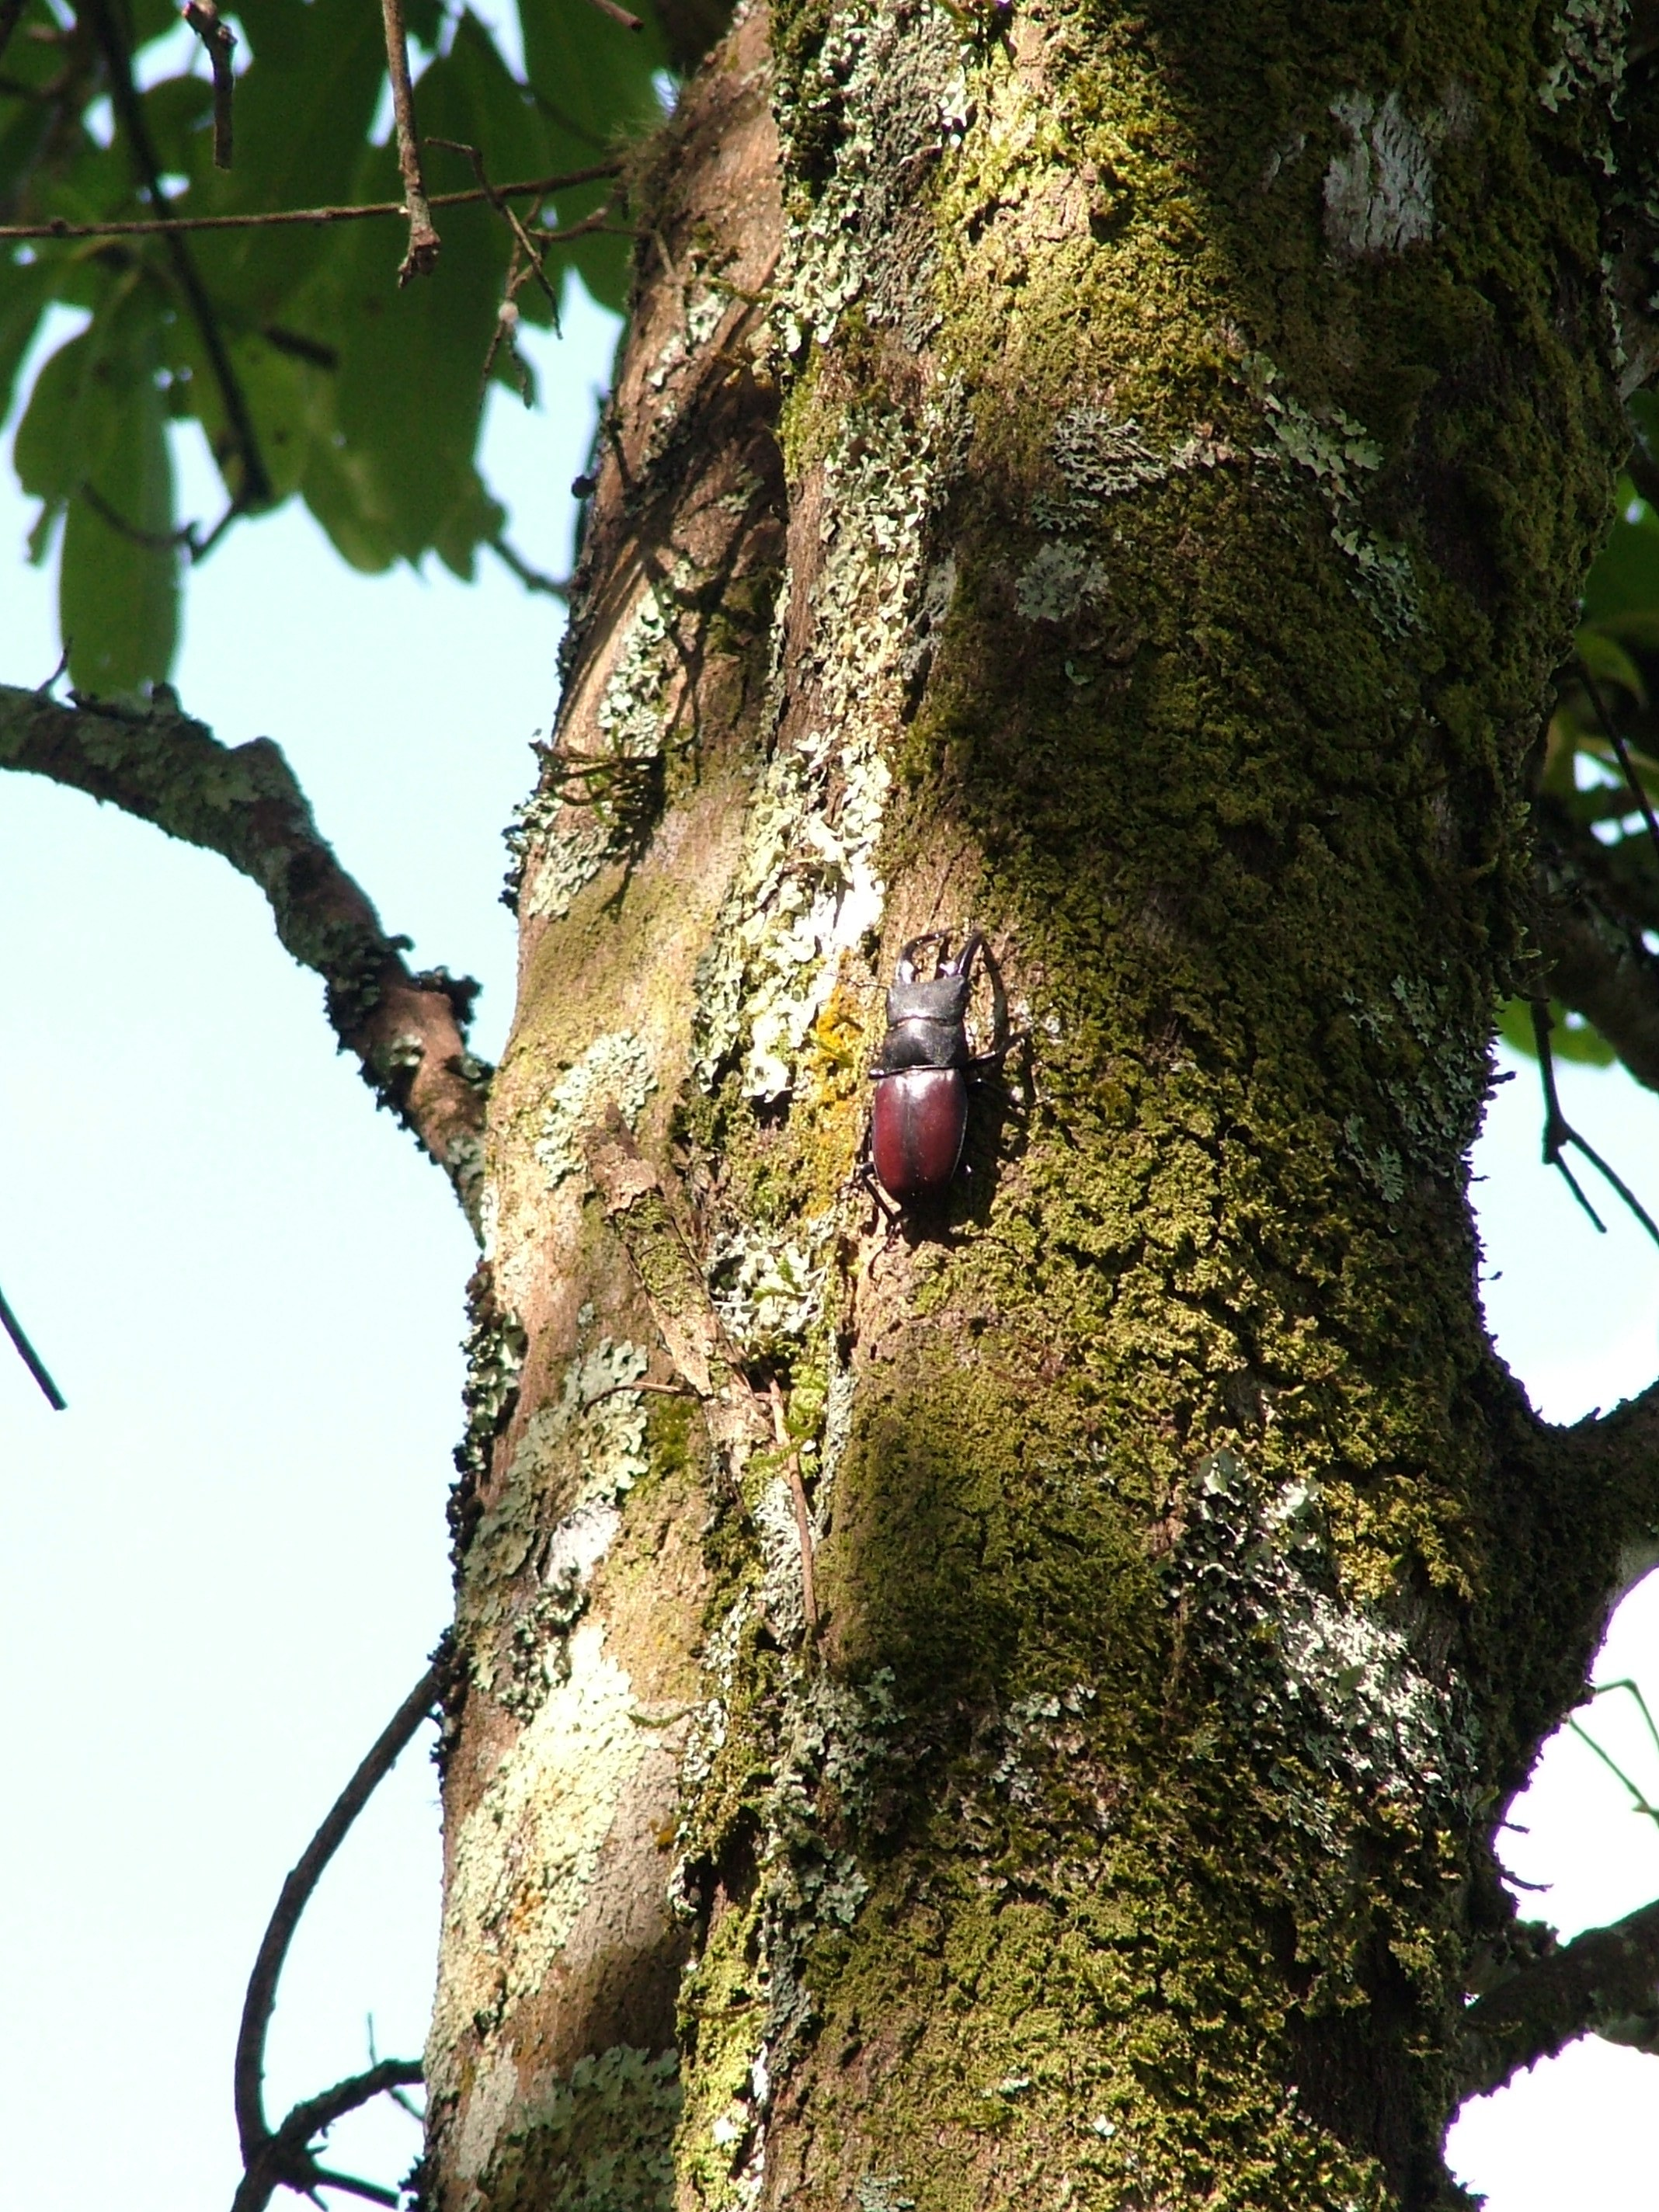 Hexarthrius davisoni male on tree in Kodaikanal